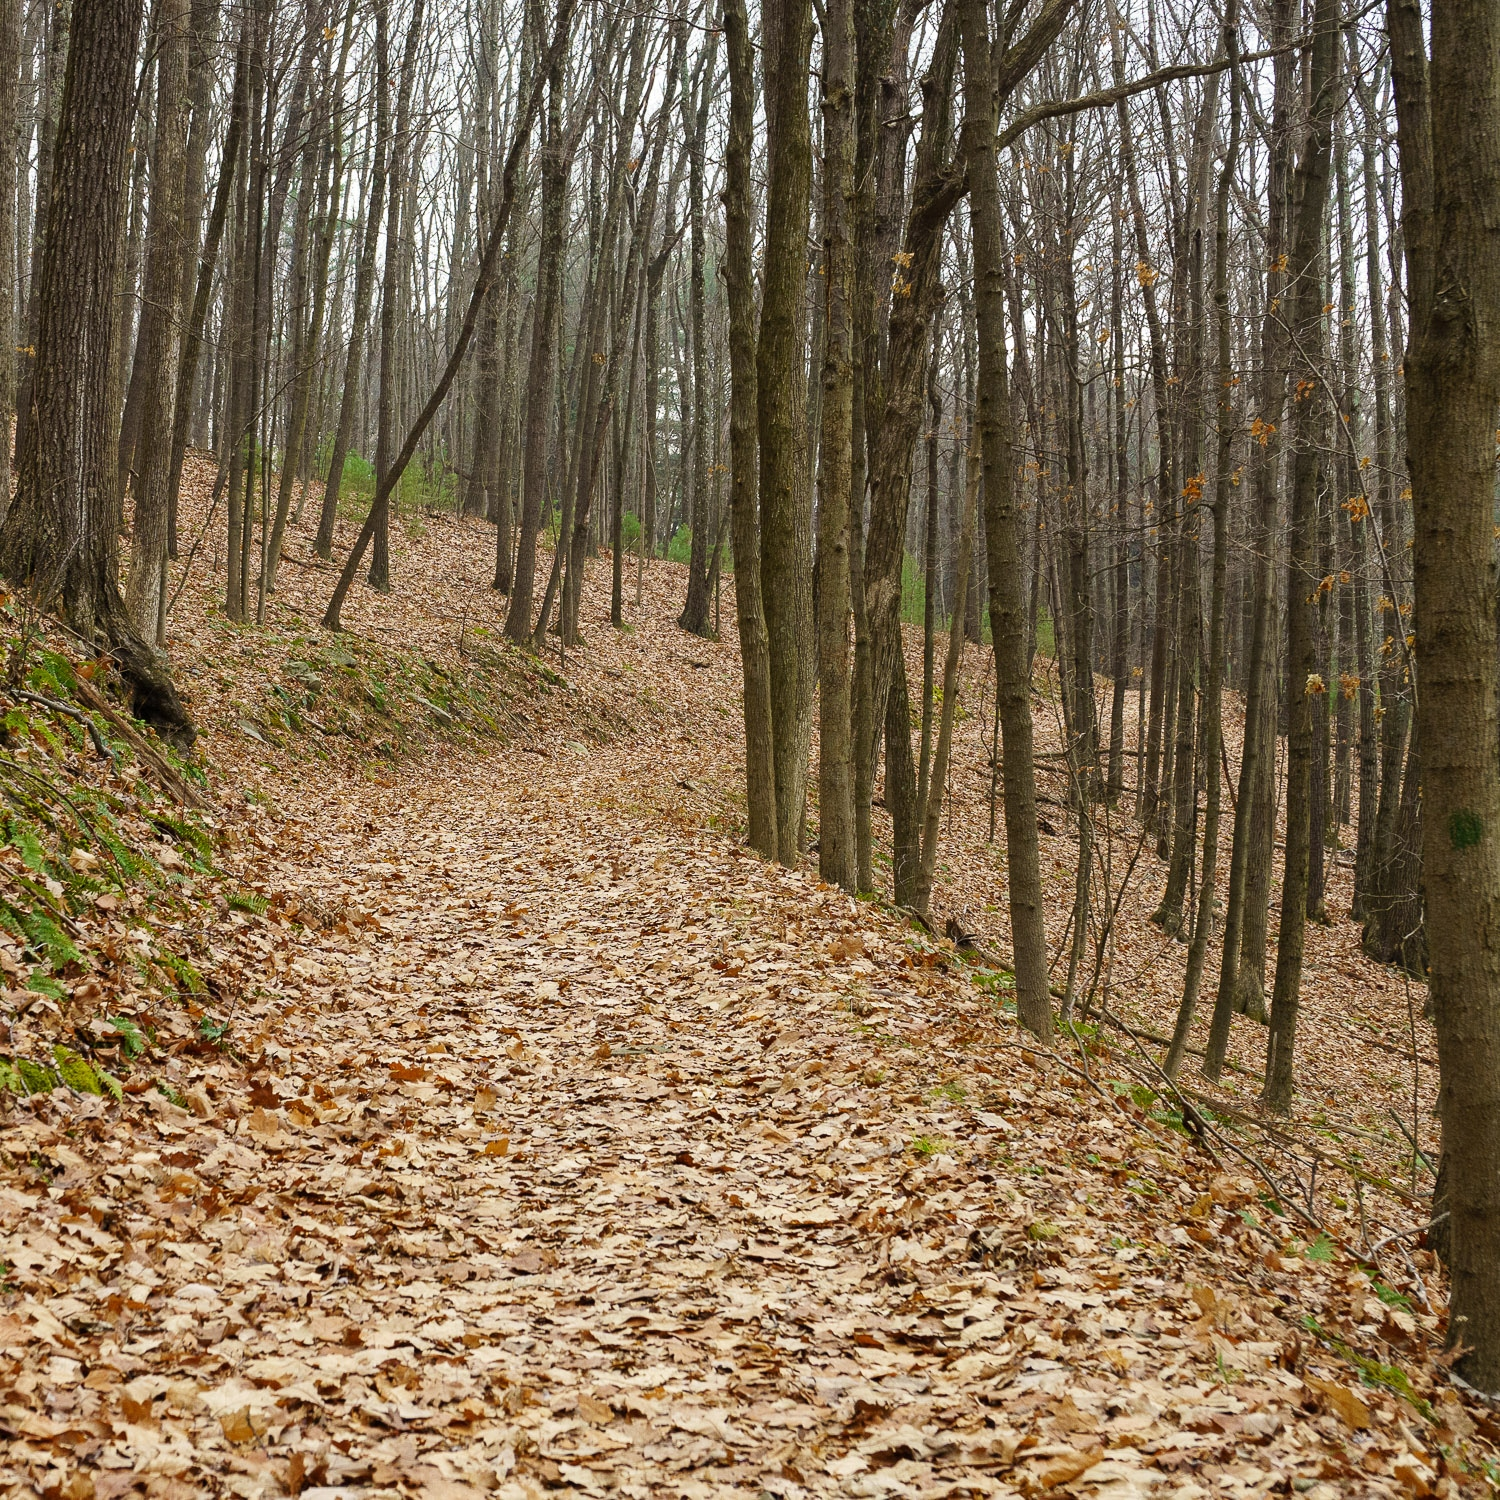 The trail twists and turns up the mountian